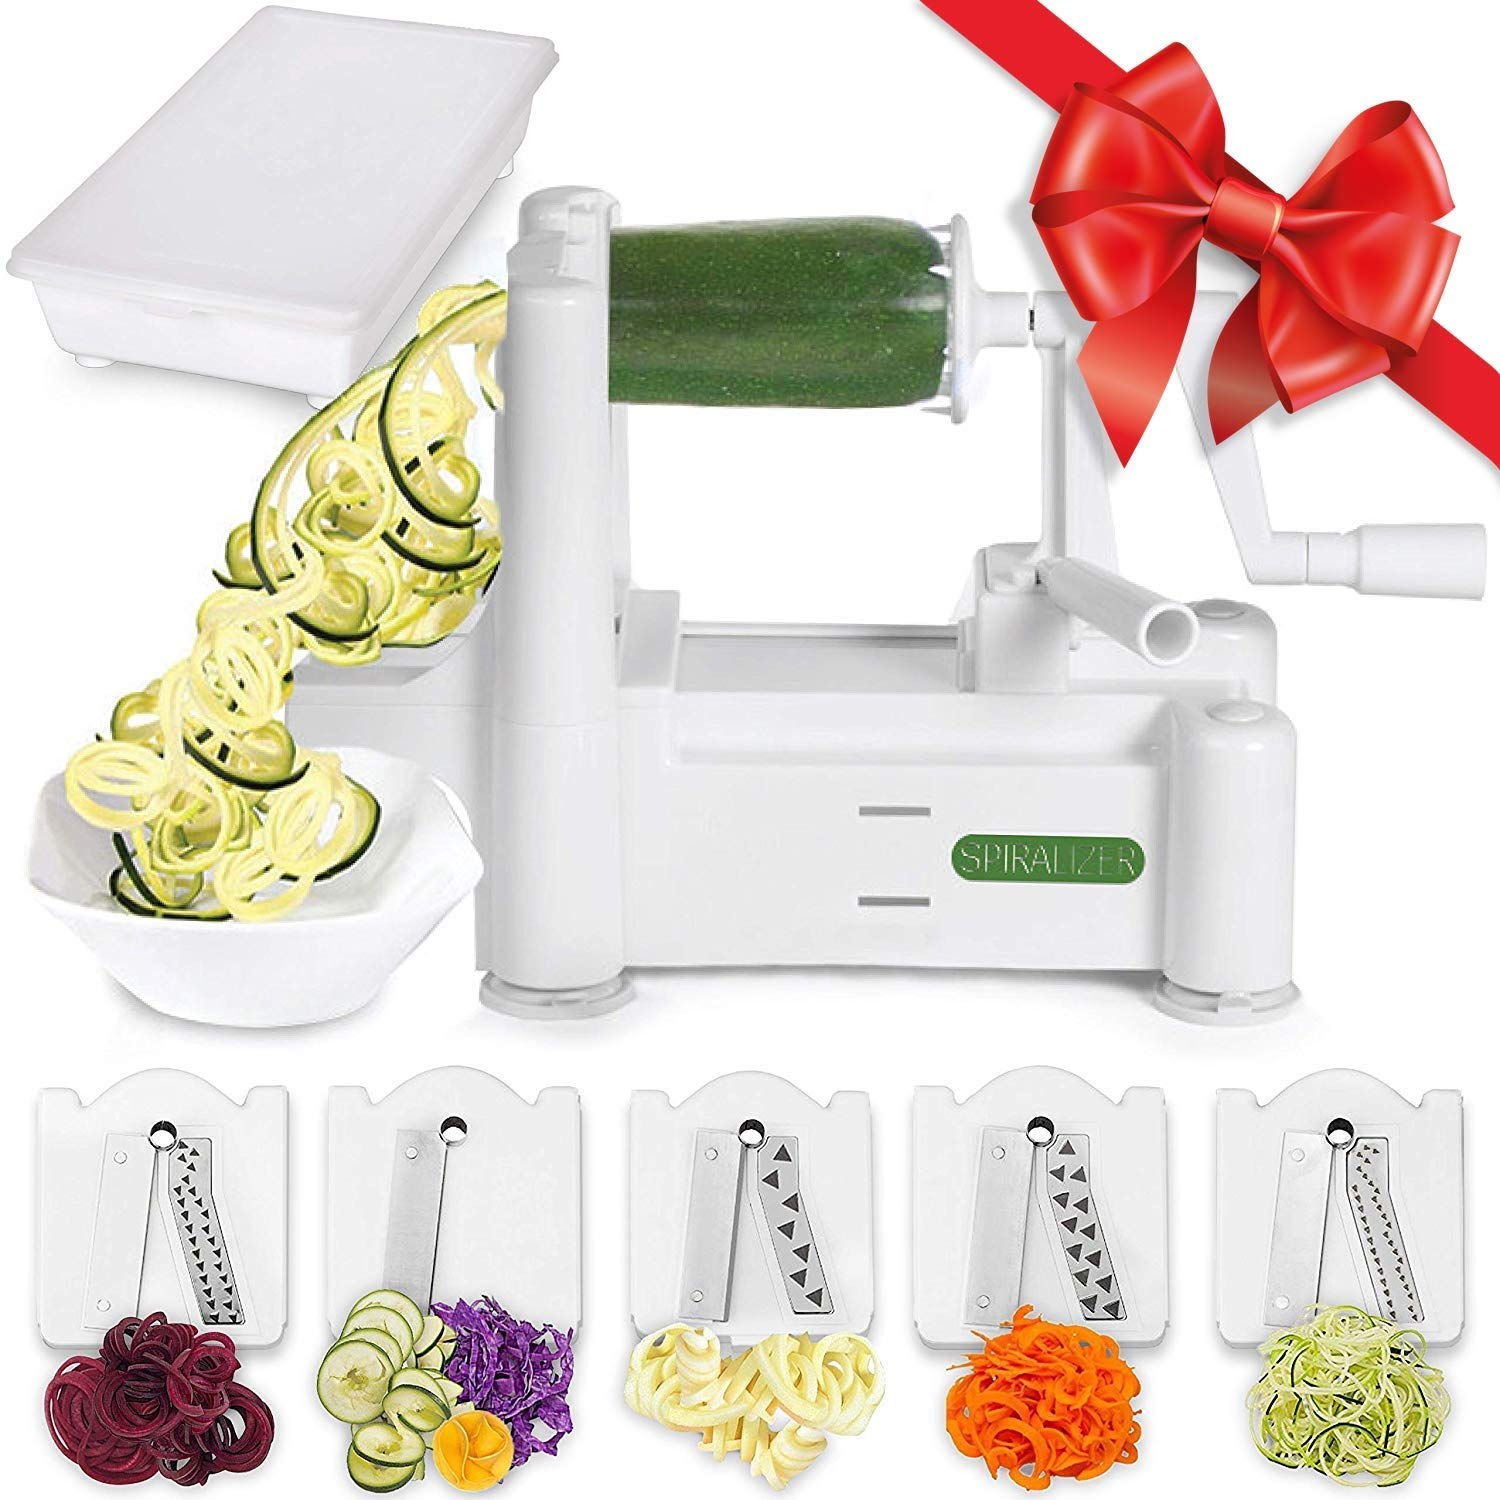 Spiralizer 5 Blade Vegetable Slicer Strongest And Manual Cableado Electrico Minimoto Chopper 49 Heaviest Best Veggie Pasta Spaghetti Maker For Keto Paleo Gluten Free Comes With Container